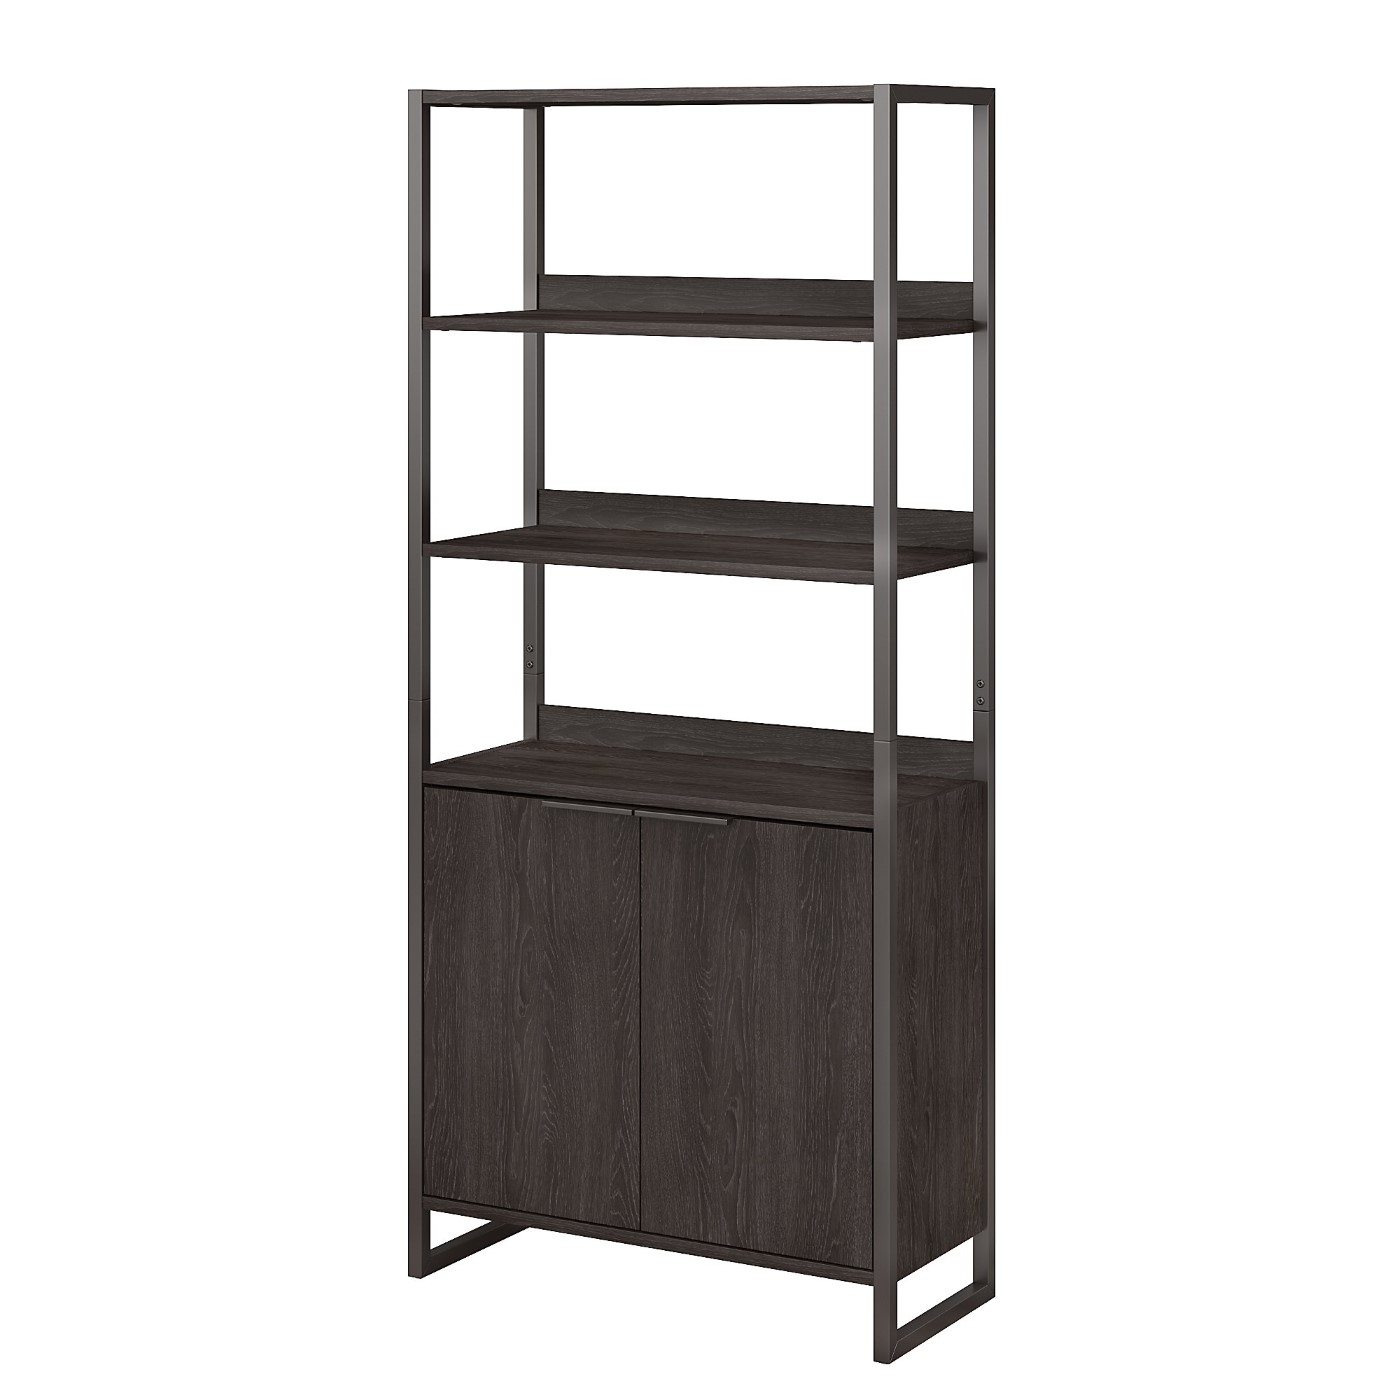 </b></font><b>The kathy ireland� Atria 5 Shelf Bookcase with Doors is Sustainable Eco Friendly Furniture. Includes Free Shipping! 30H x 72L x 72W</font>. <p>RATING:&#11088;&#11088;&#11088;&#11088;&#11088;</b></font></b>